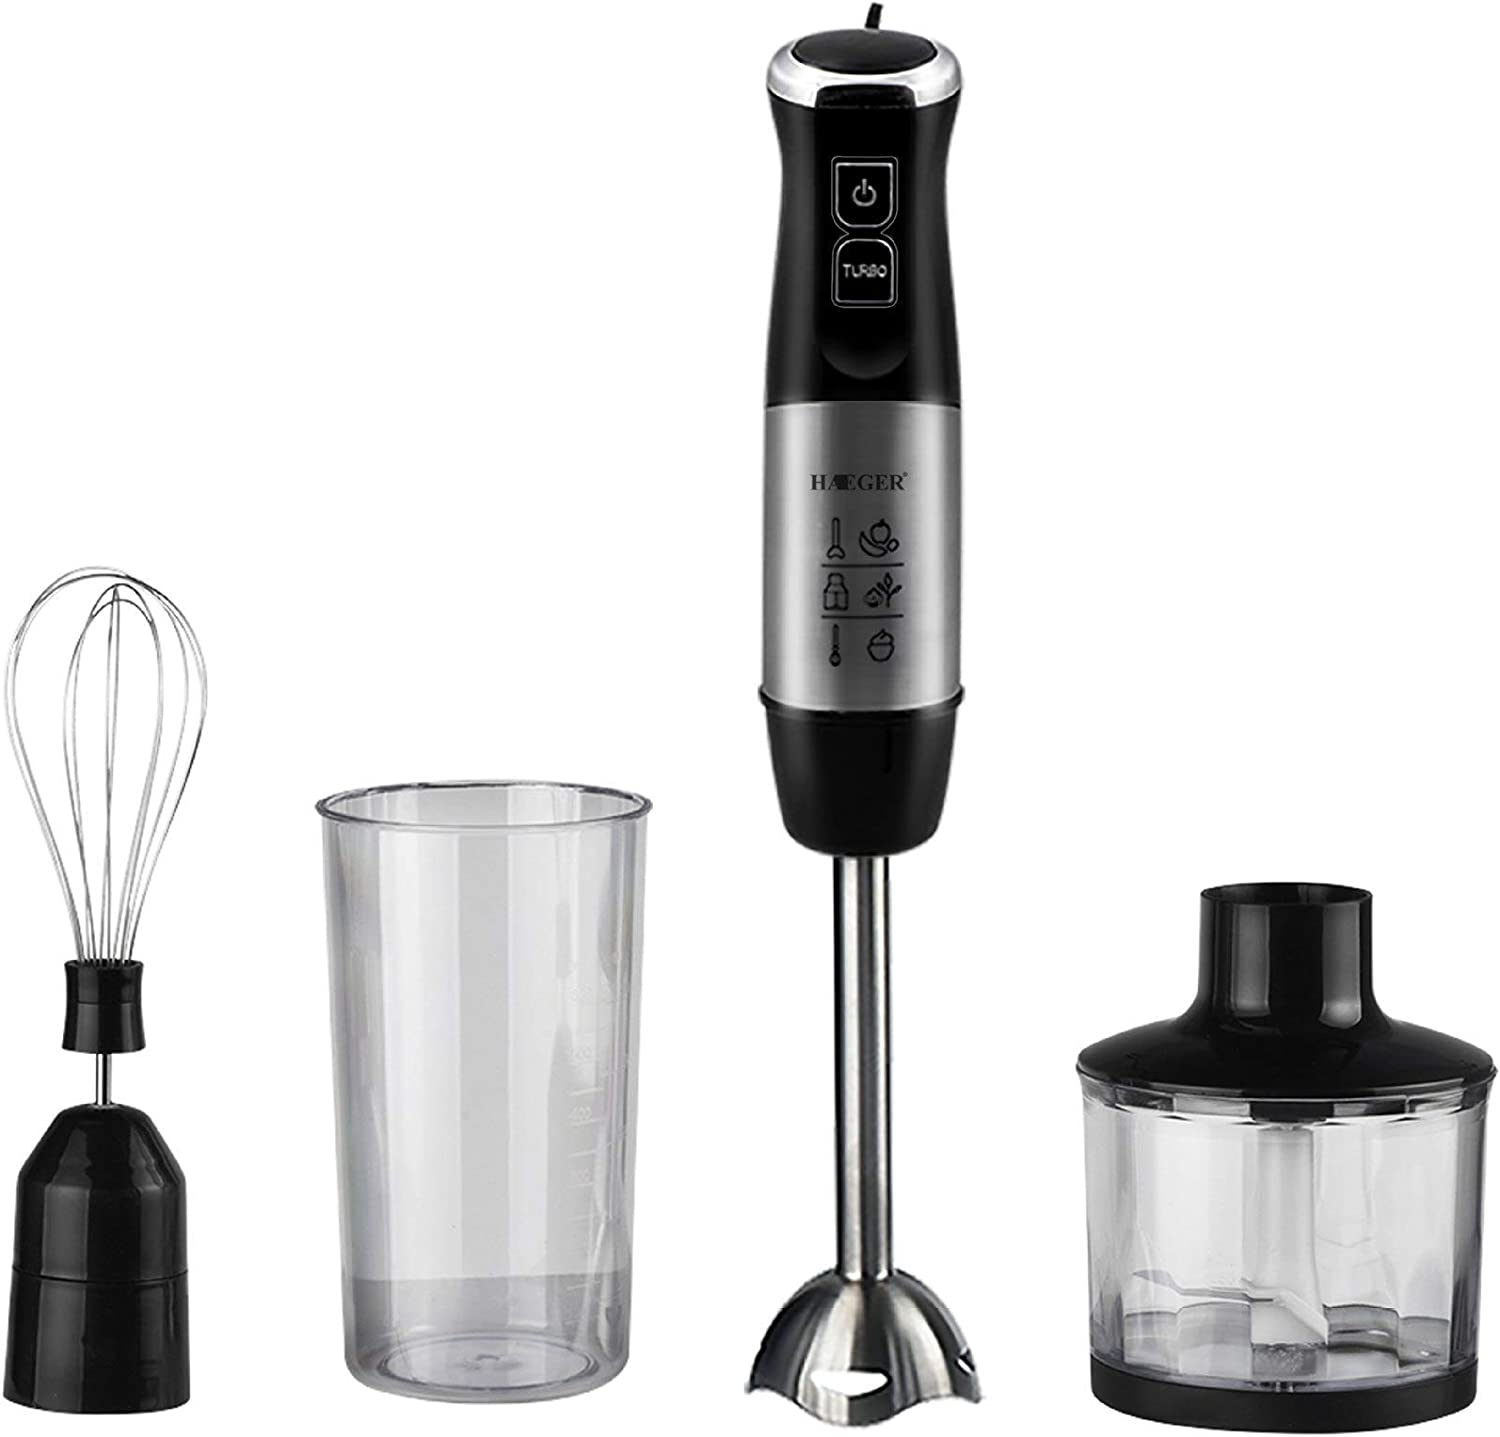 XIAO WEI Hand Blender Made of Stainless Steel (800 watt Mixer Chopper Whisk and Food Processor incl. 4-Piece Accessories) Hand Blender Set Hand Blender Hand Mixer Black